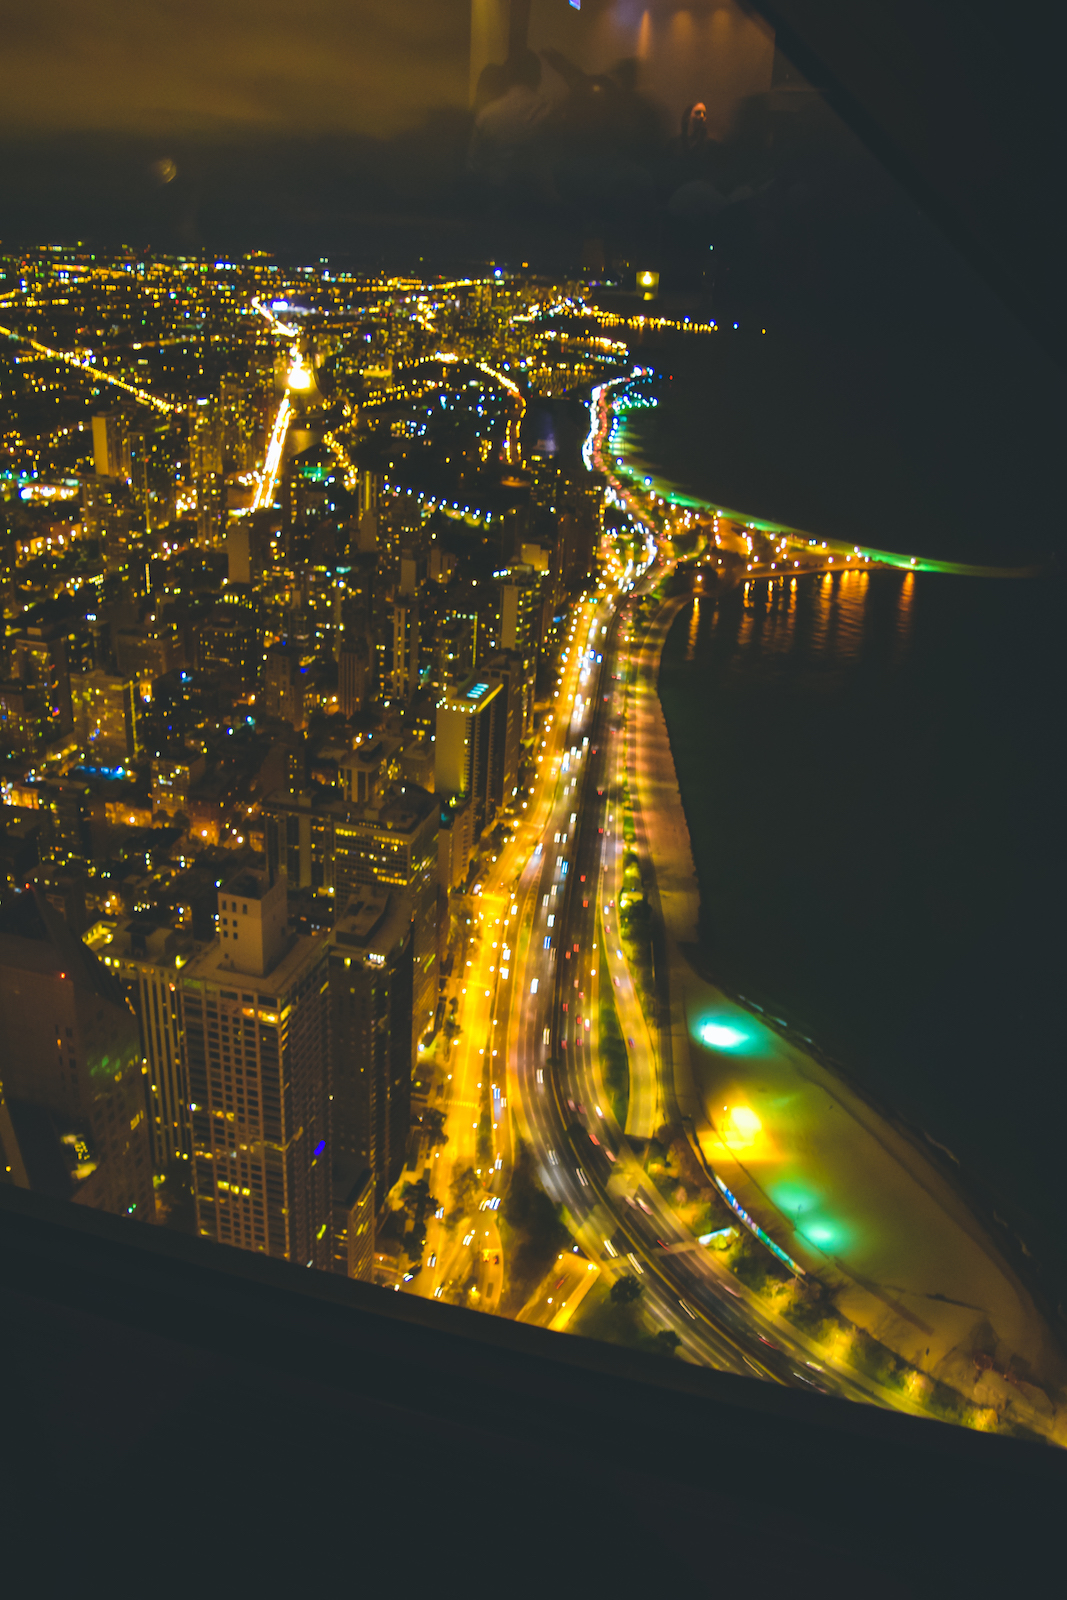 A First Timers Weekend City Guide to Chicago John Hancock Center Signature Lounge at 96th Travel guide to chicago illinois blog what to do what to see where to go 3 days-100